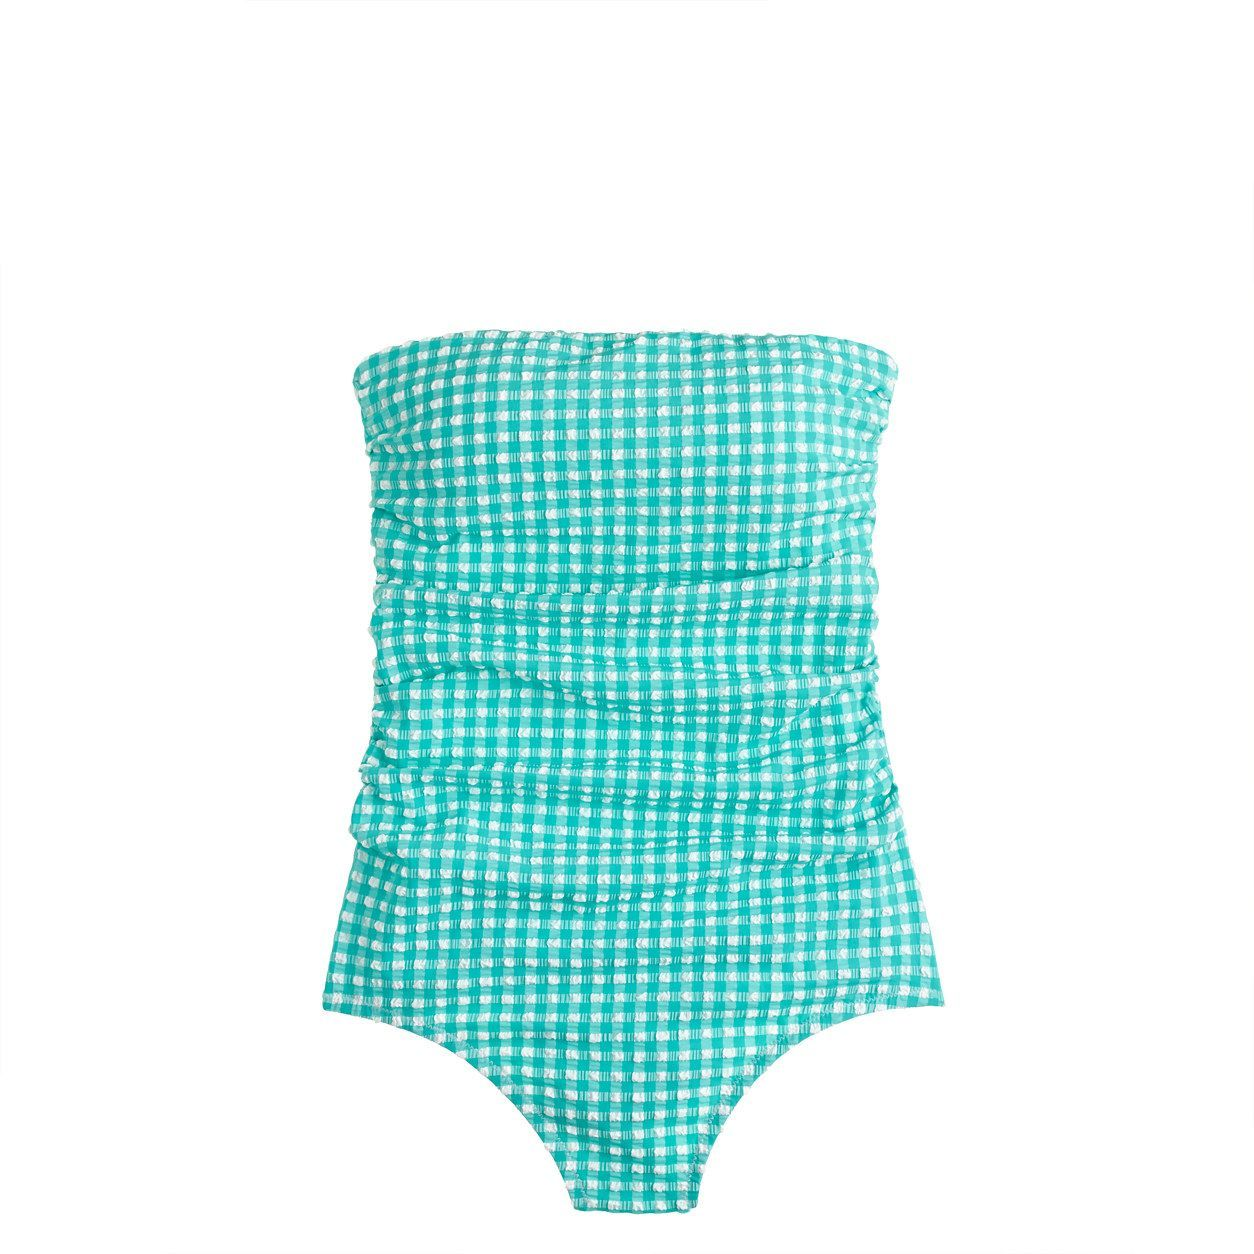 1c74ca4c88 J.Crew Womens Gingham Ruched Bandeau One-Piece Swimsuit (Pacific Turquoise   Ivory Kl939